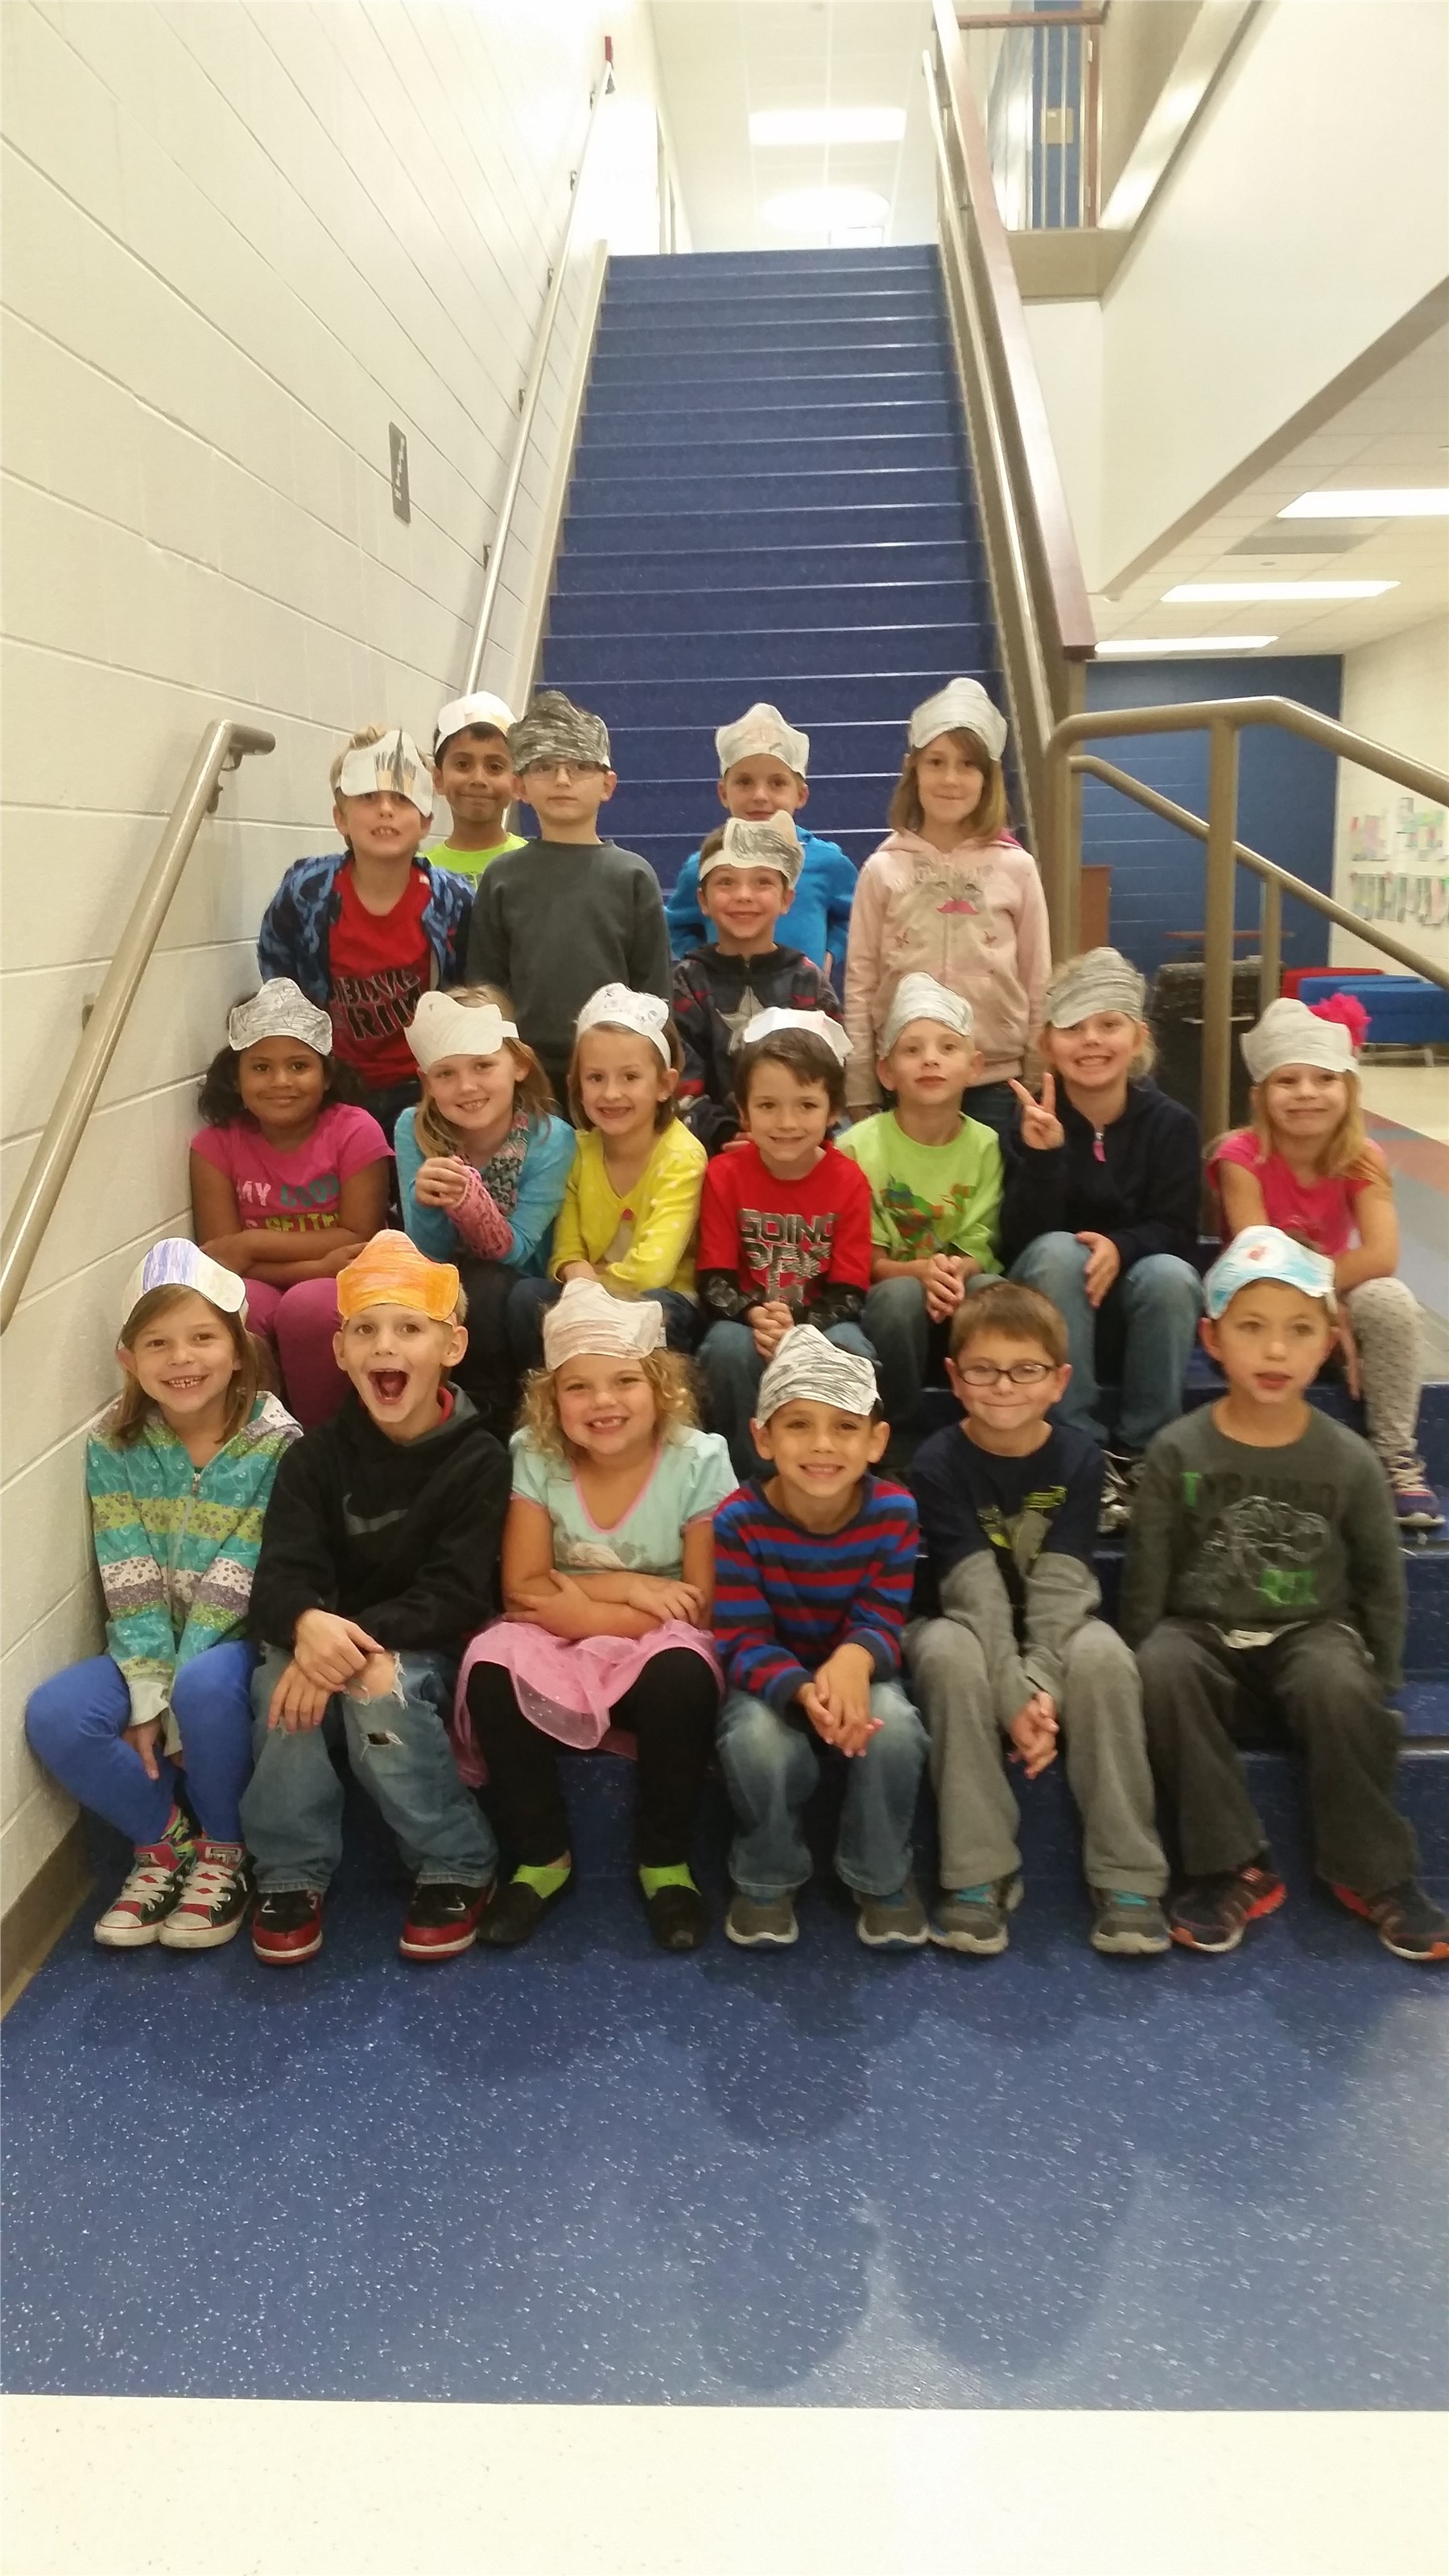 Students wearing crowns